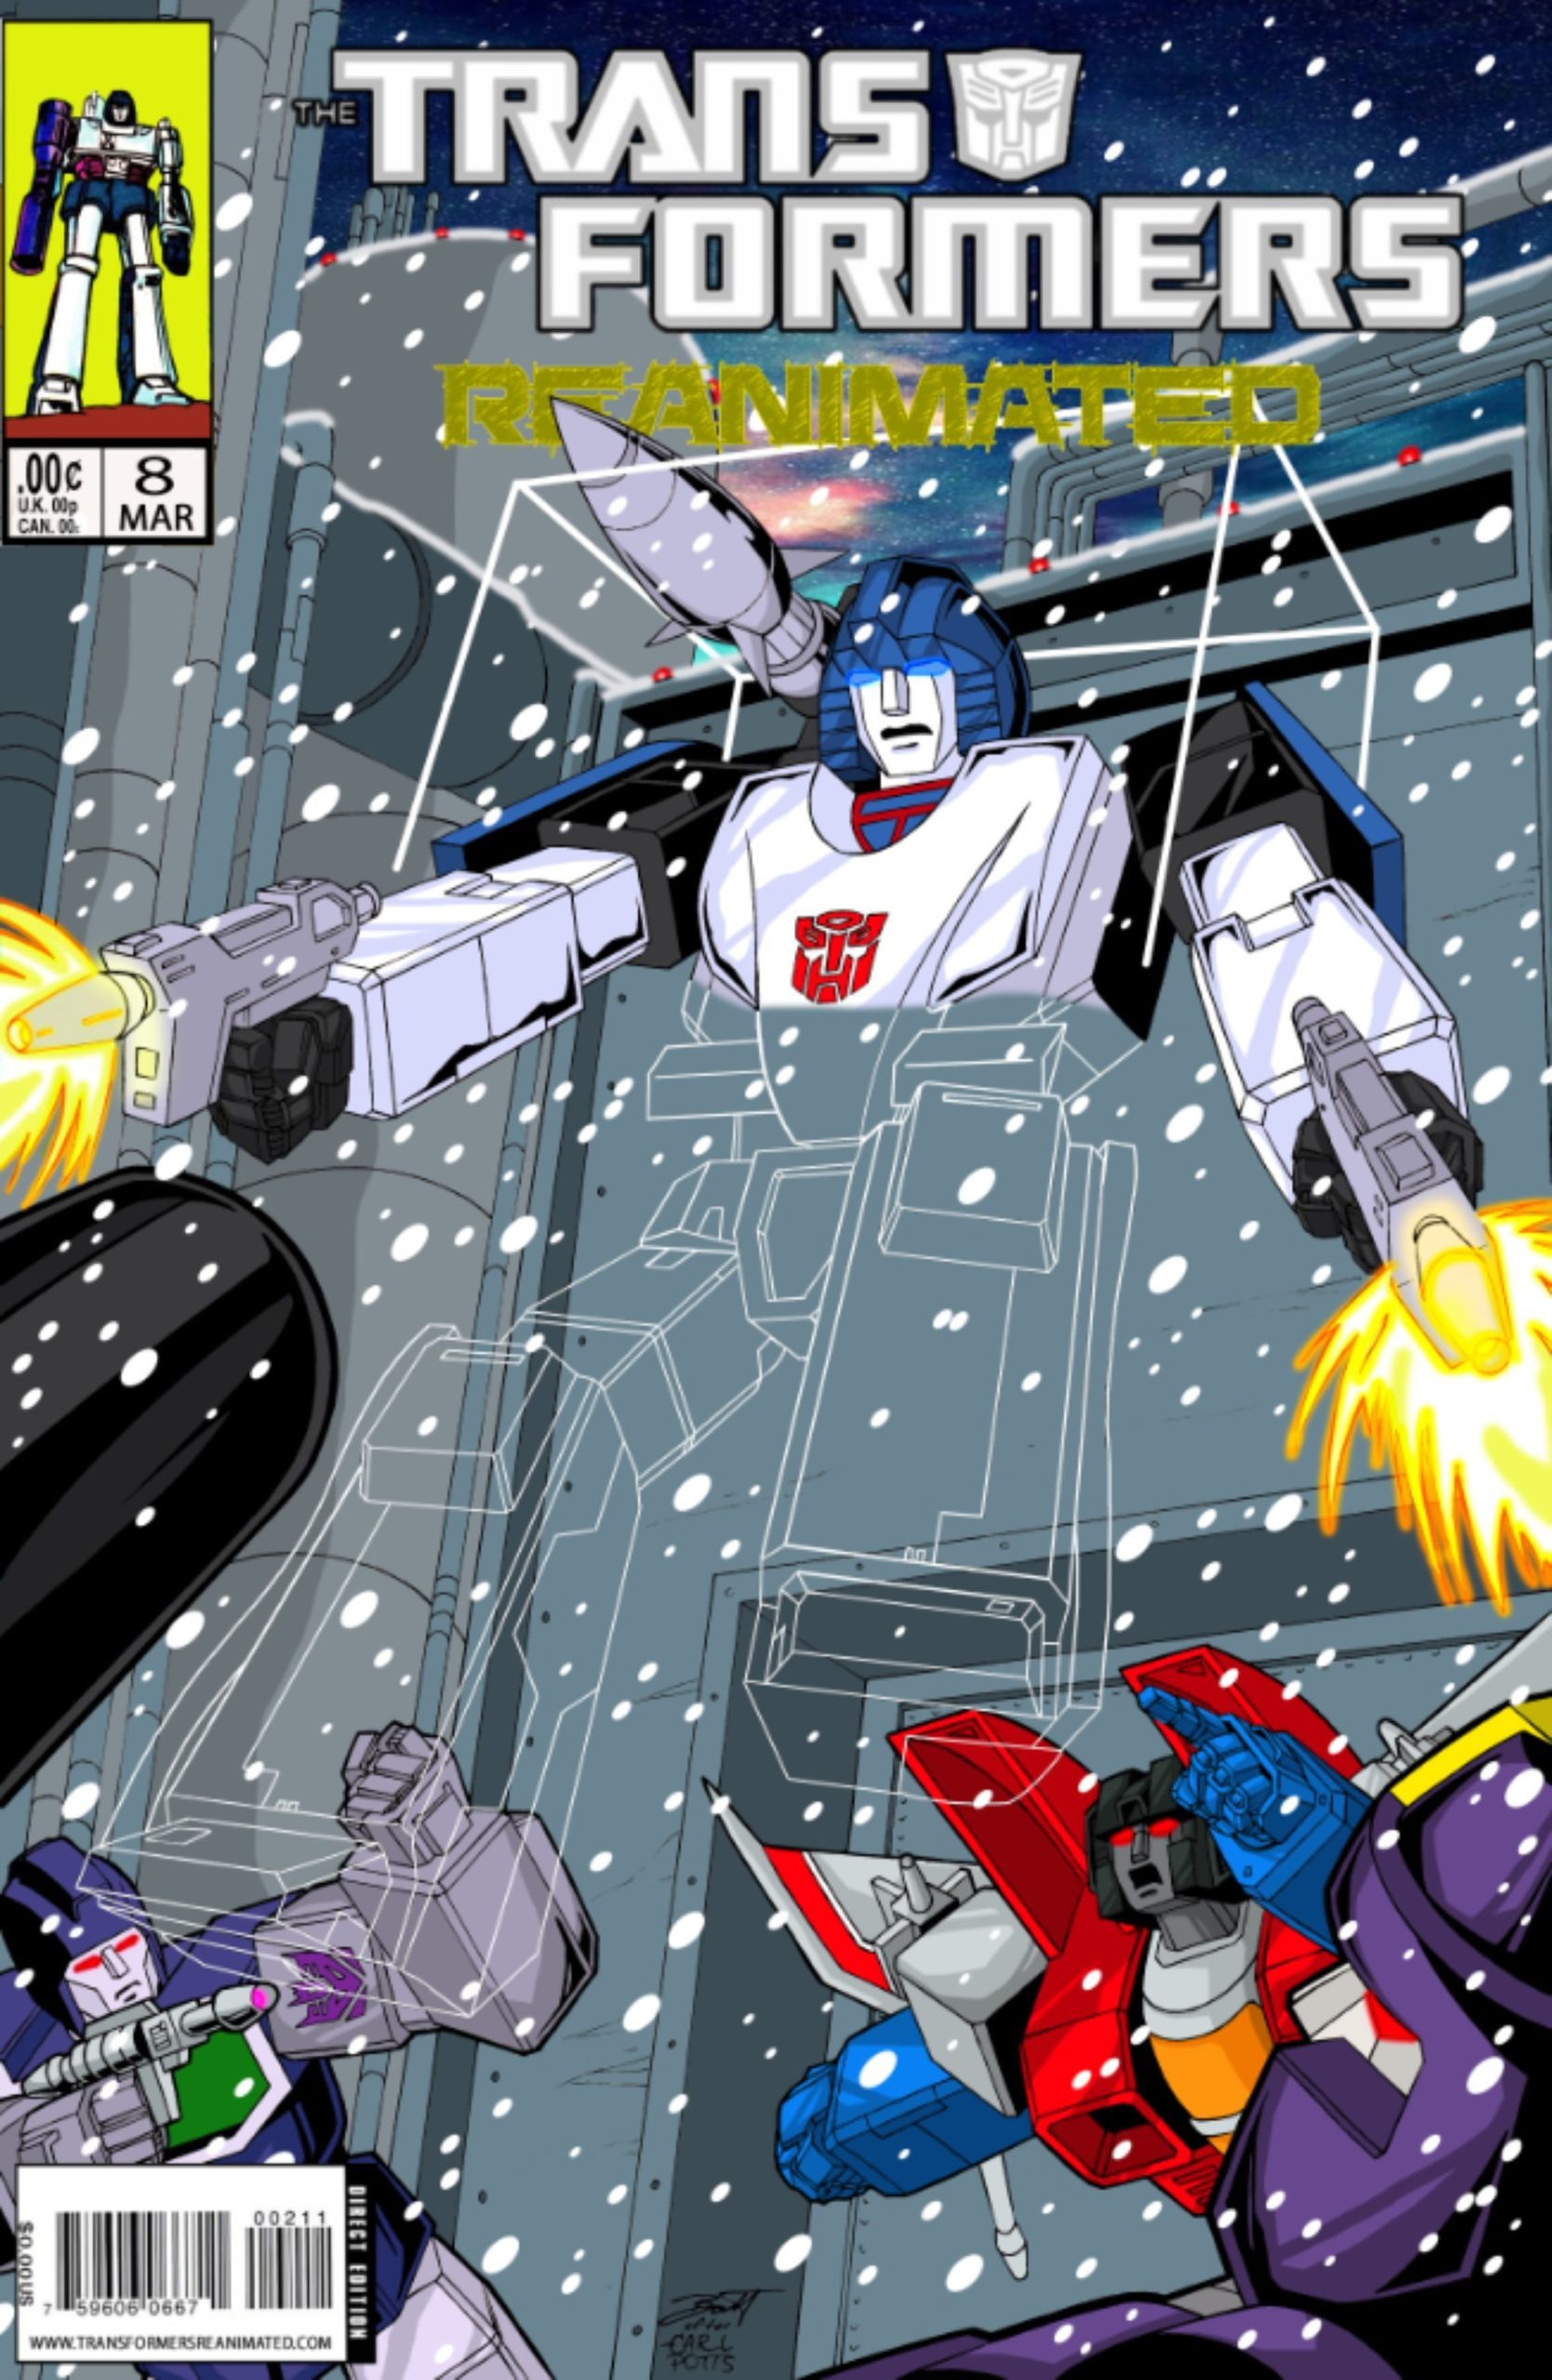 Transformers: REANIMATED Issue 8: Snowblind.